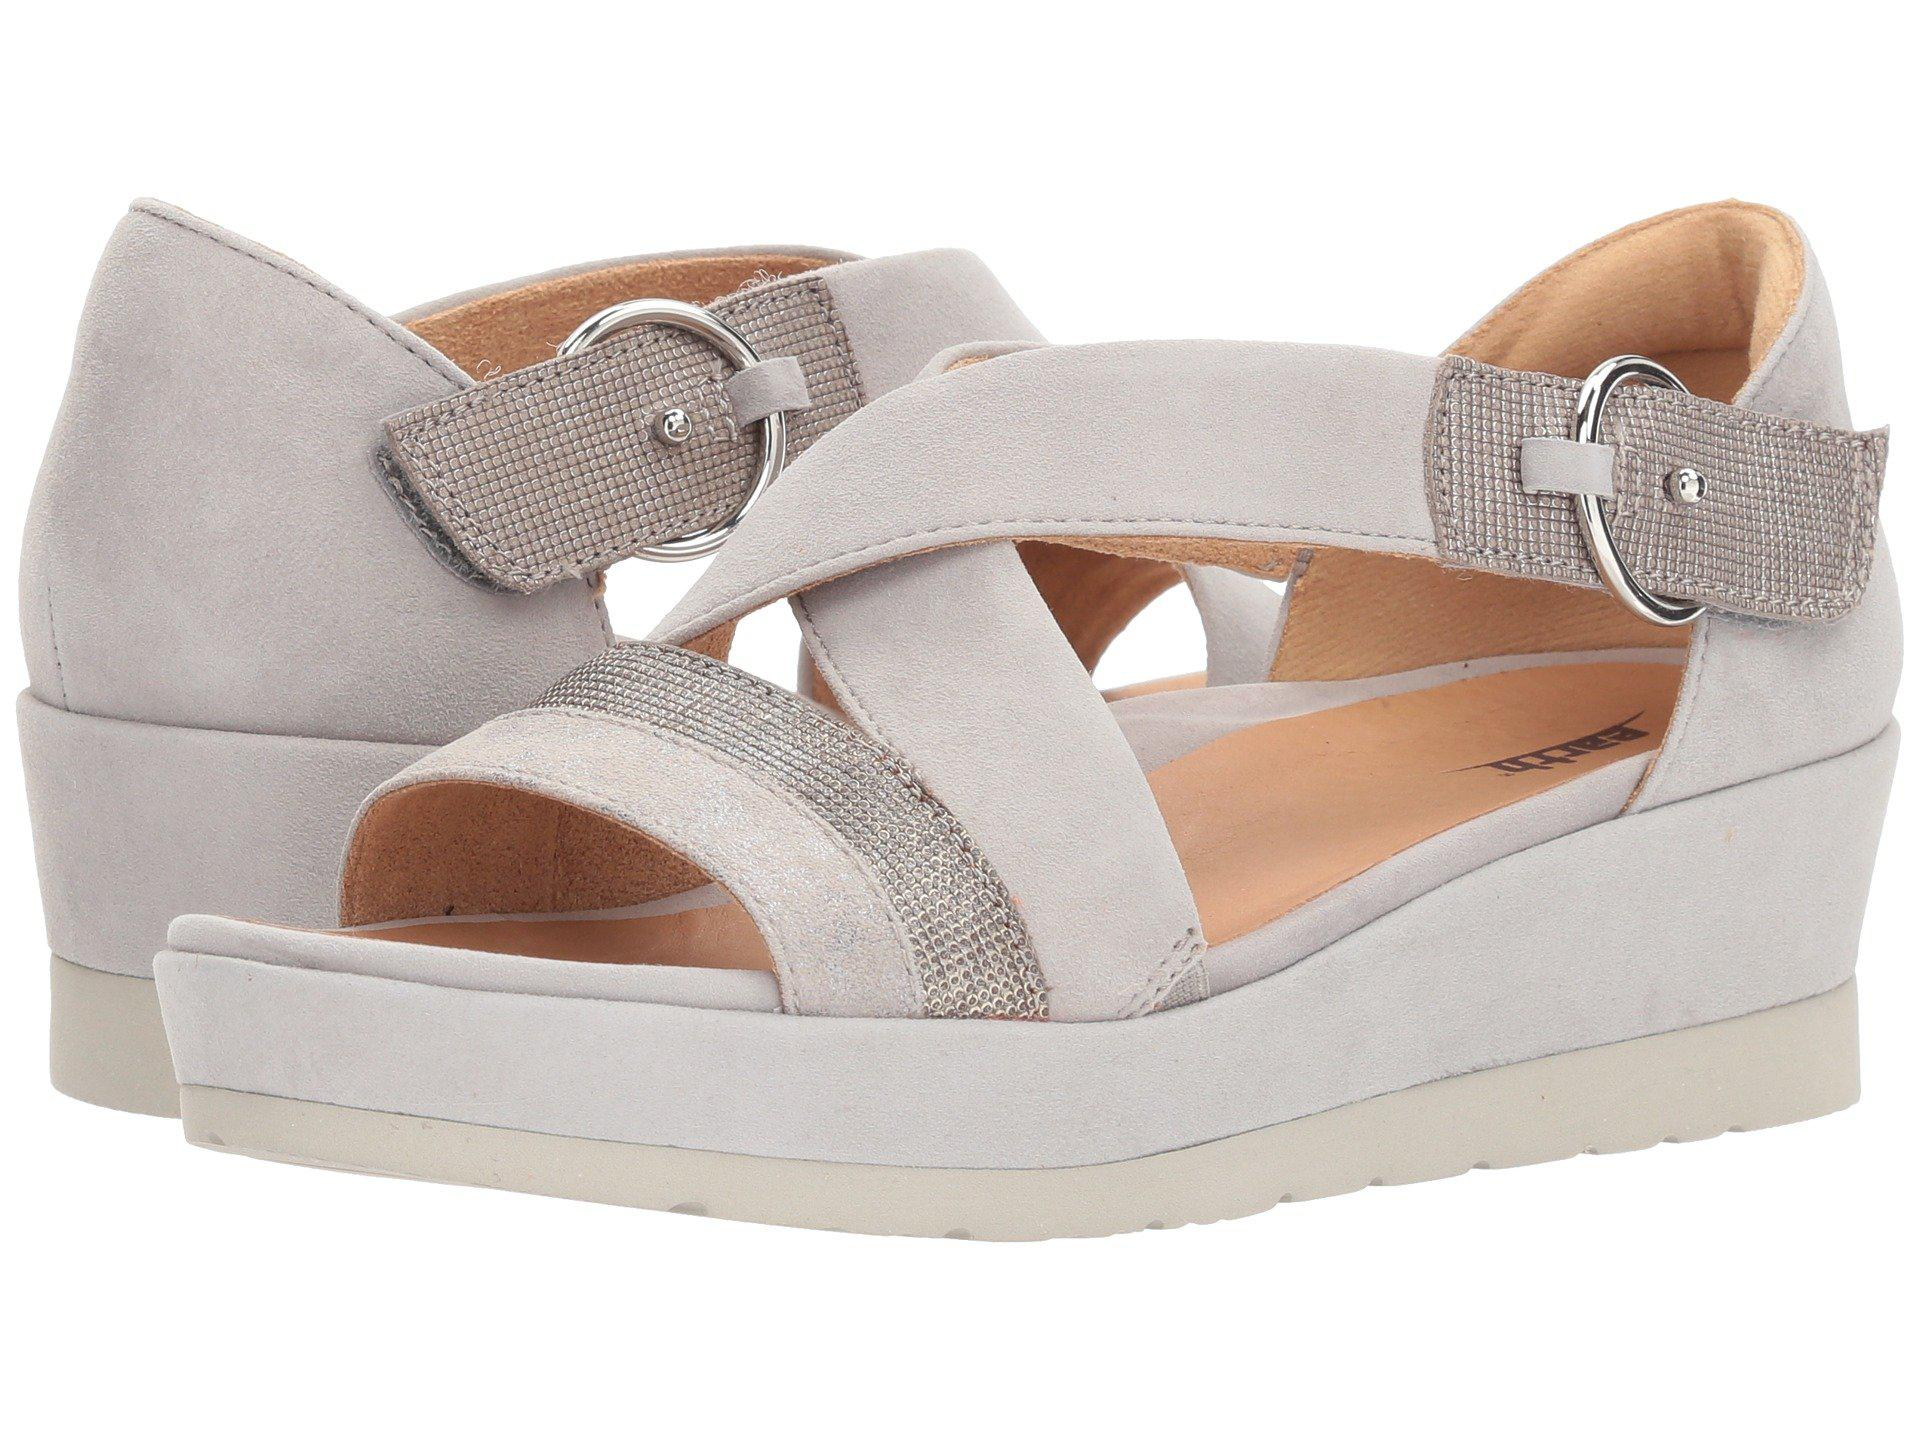 6f45be02c8 Lyst - Earth Hibiscus (light Grey Metallic Suede) Women's Shoes in Gray